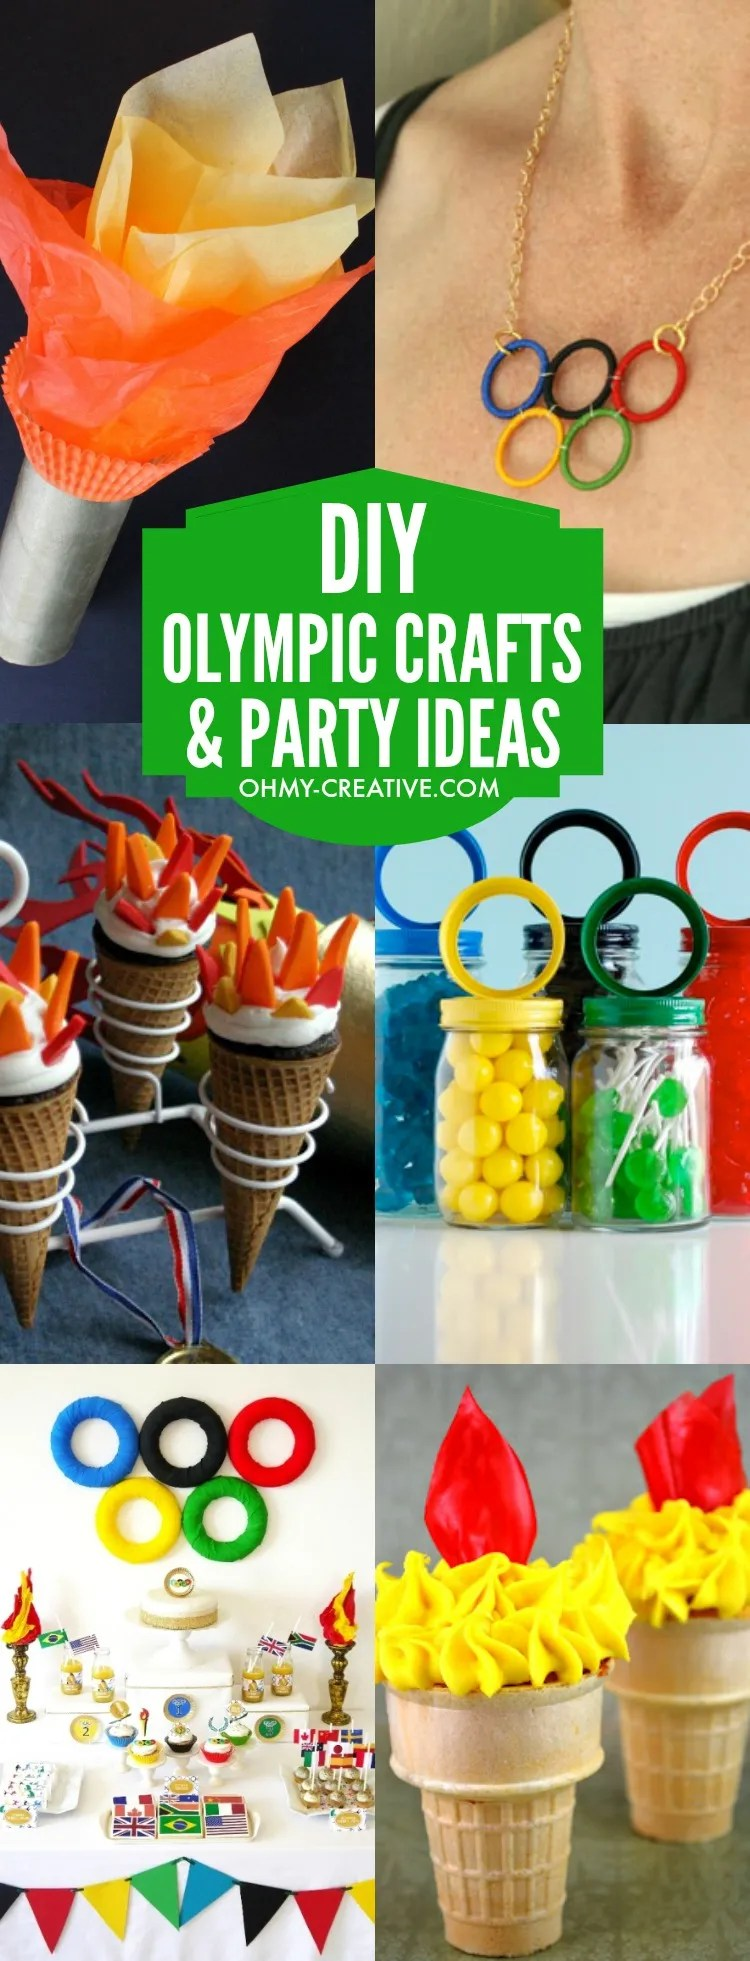 craft and creativity ideas diy olympic crafts and ideas oh my creative 3717